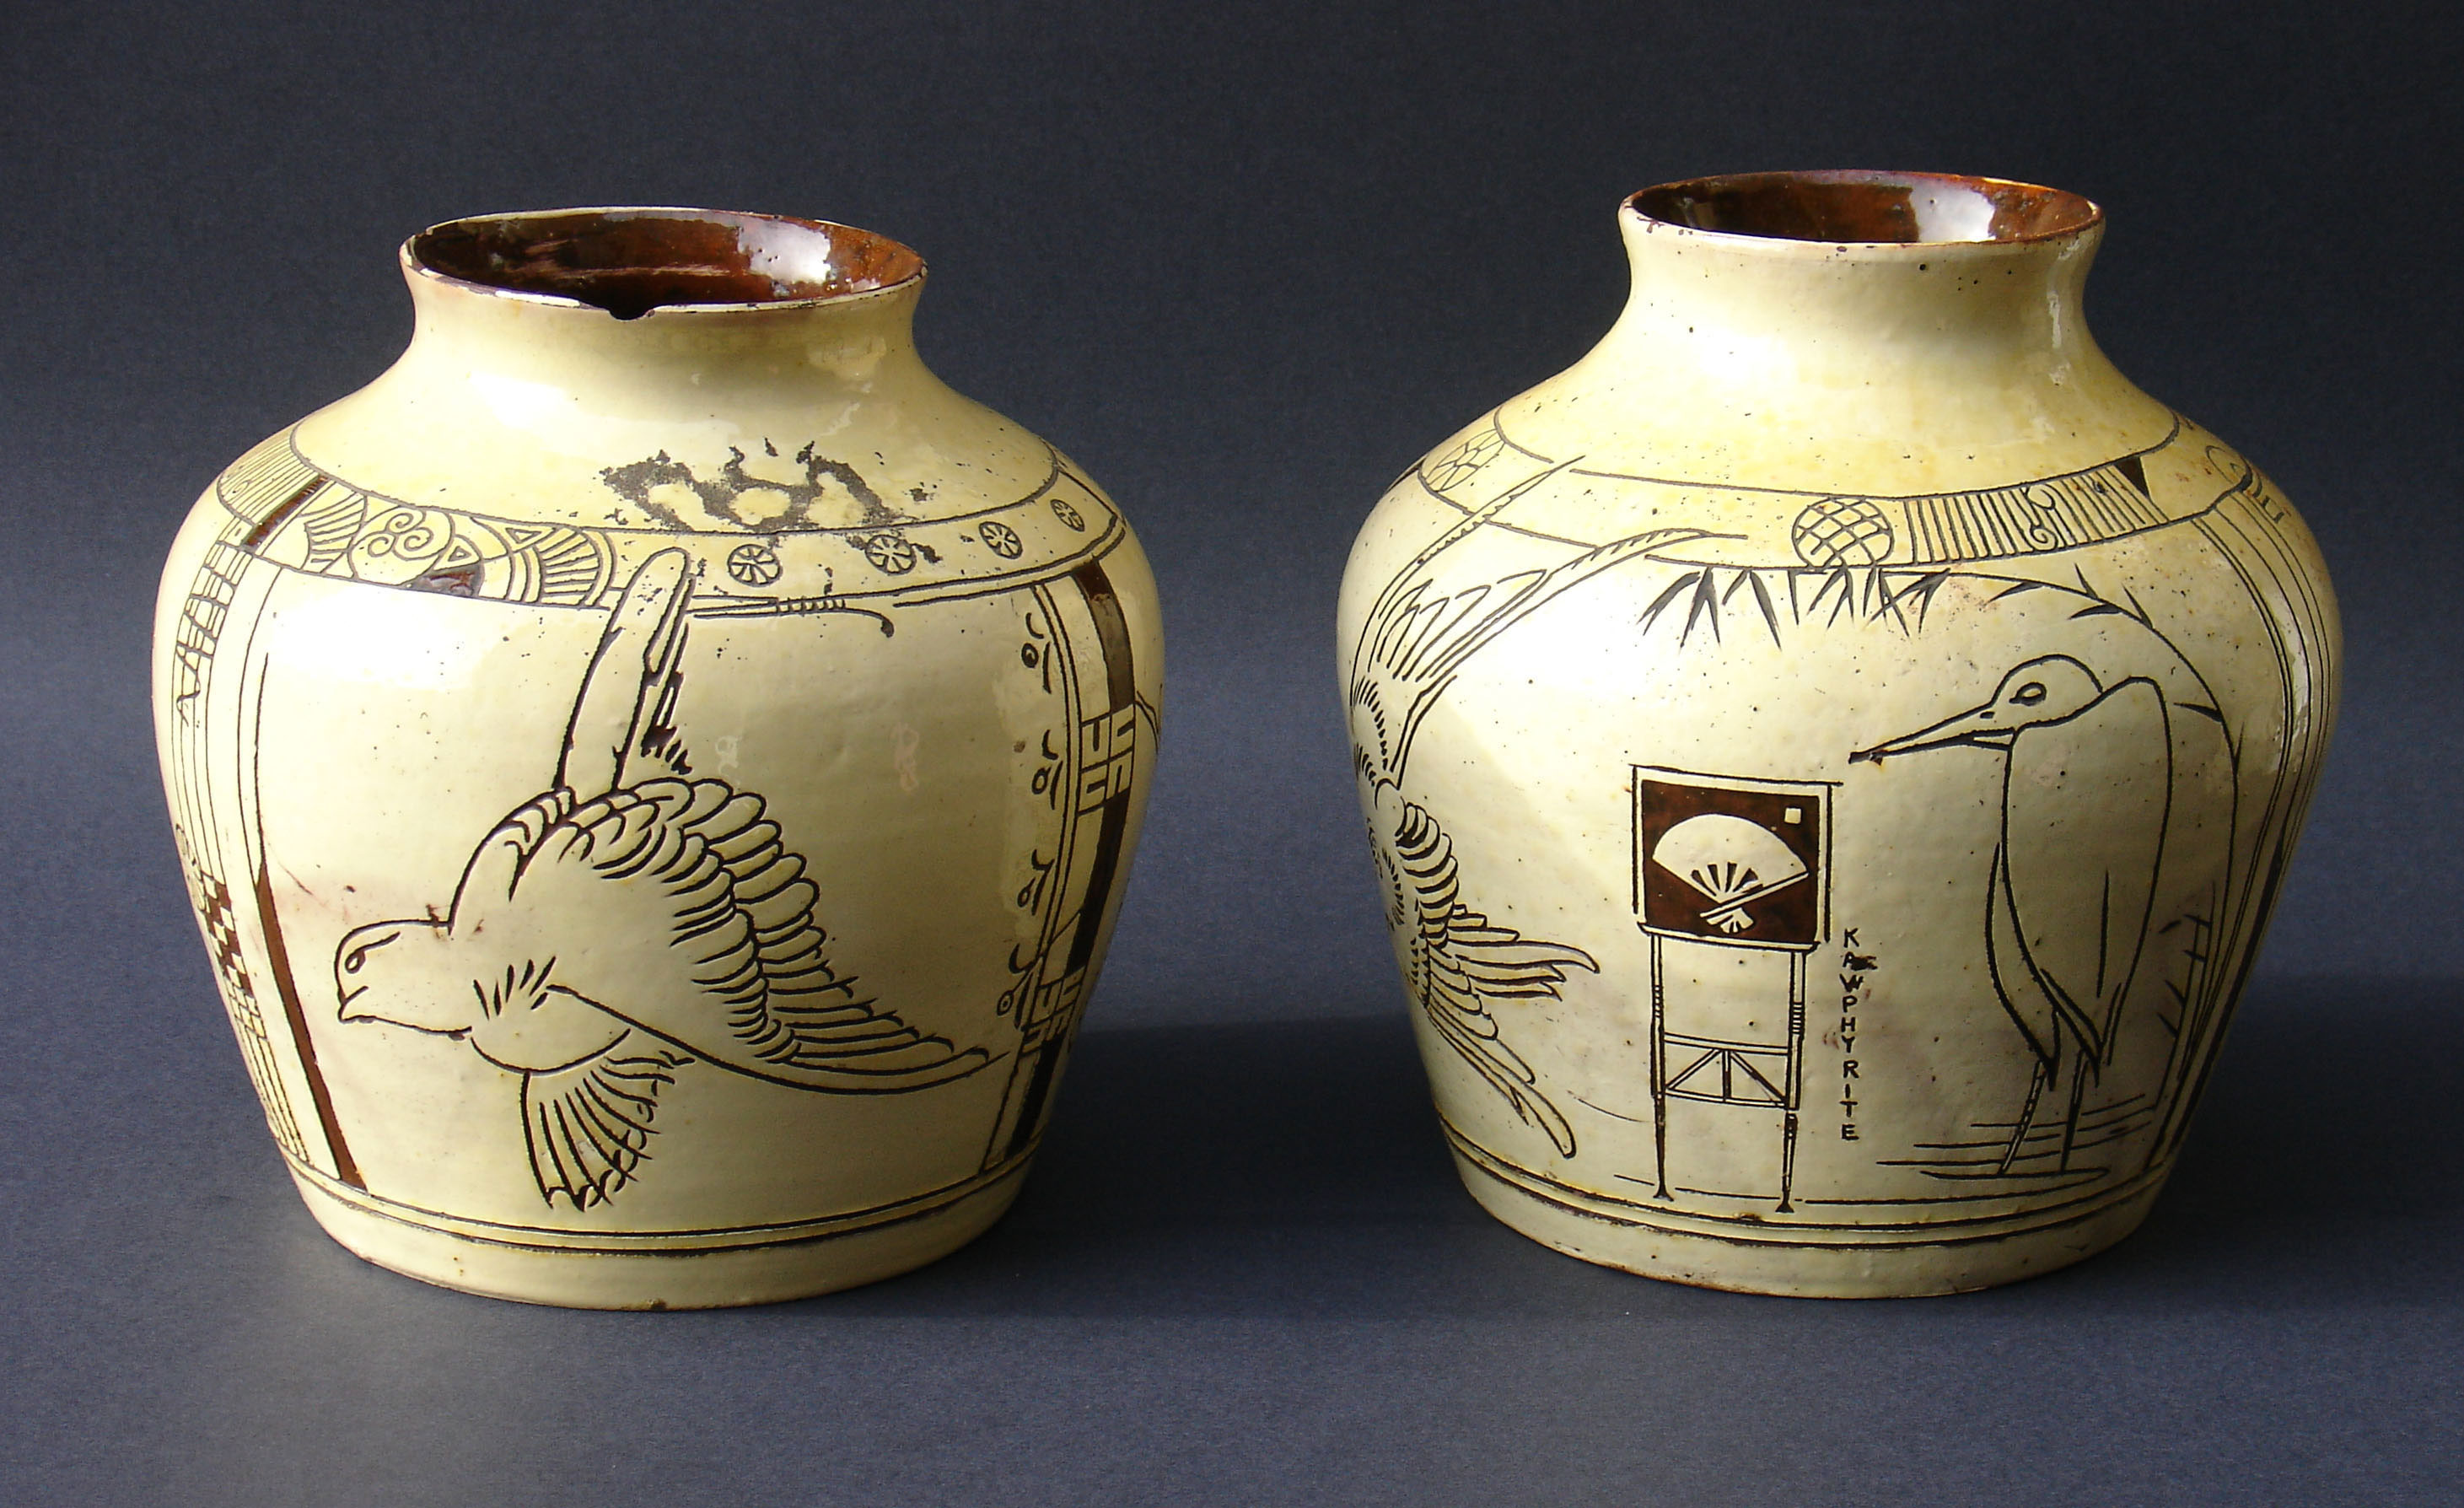 A pair of Godwin Vases ceramic antiques from Paul Reeves